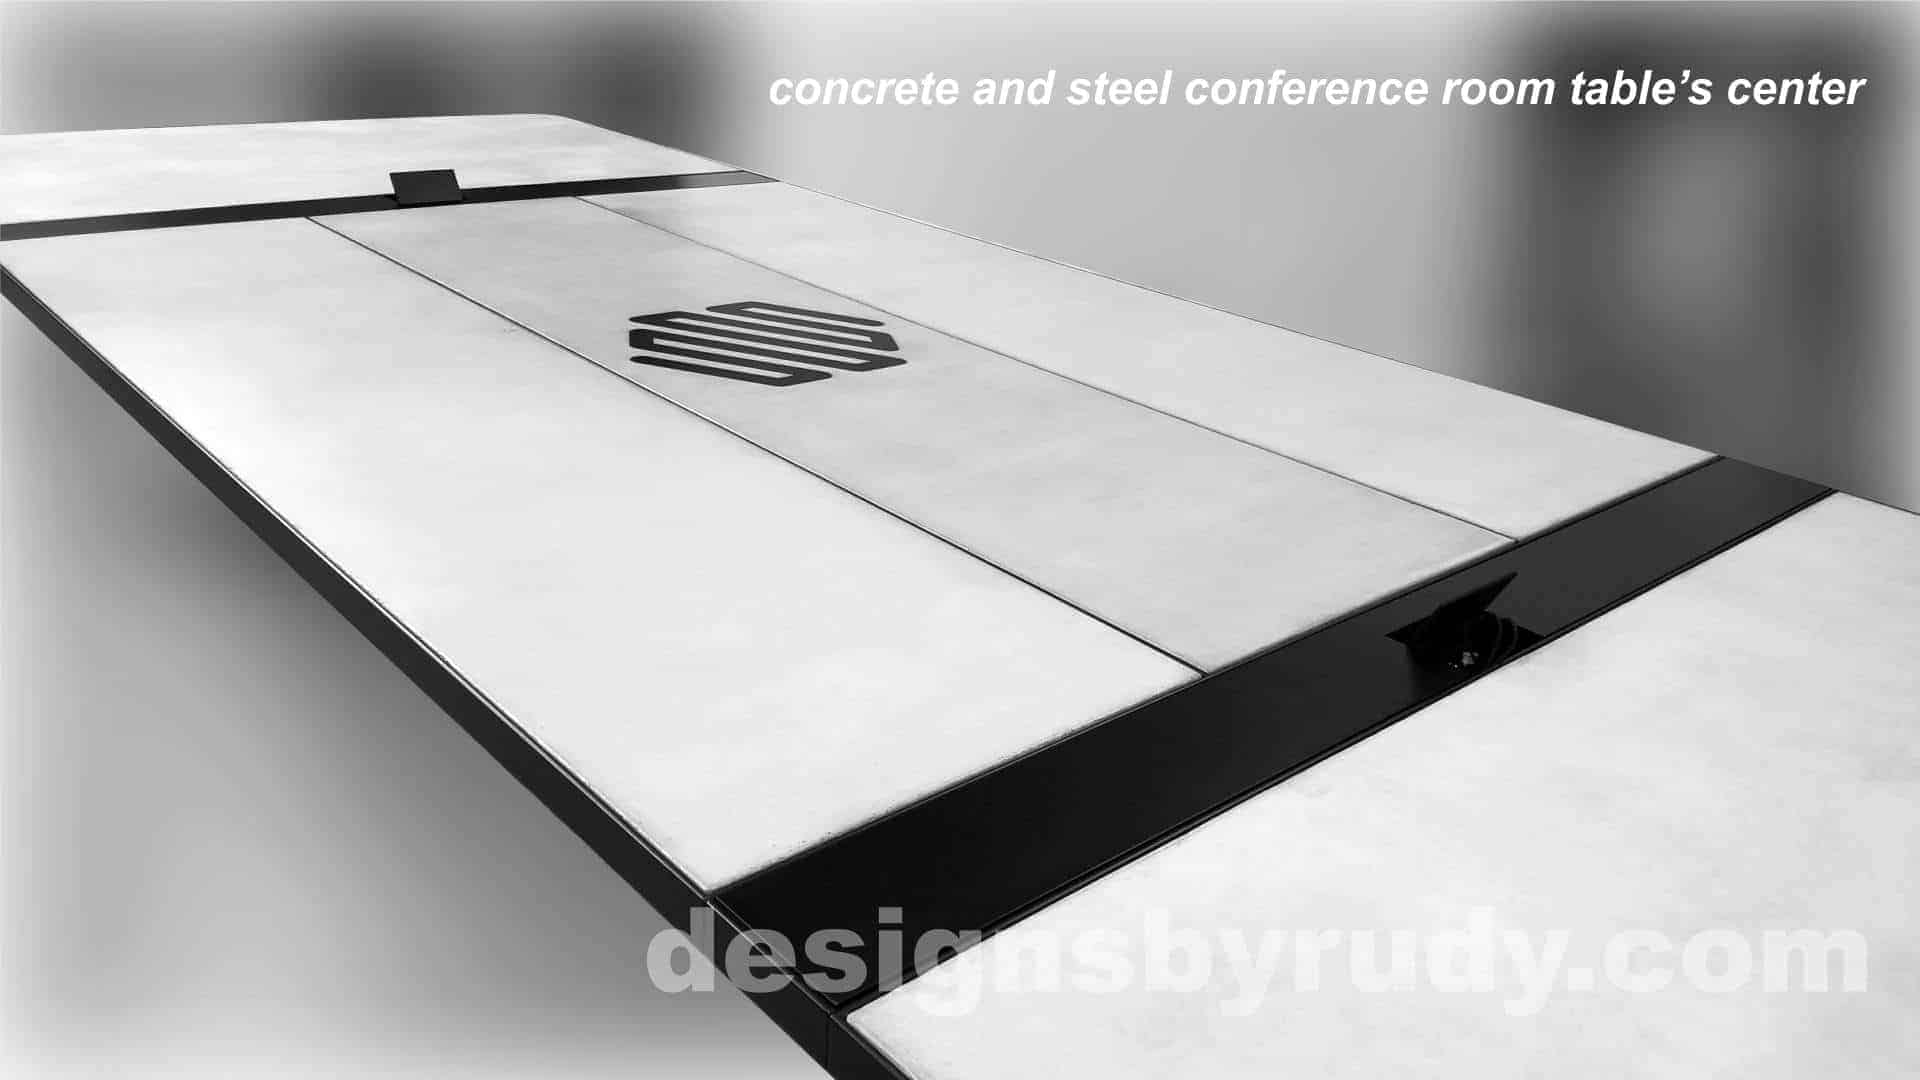 4 Concrete and Steel Conference Room Table for Markforged finished table center, Designs by Rudy